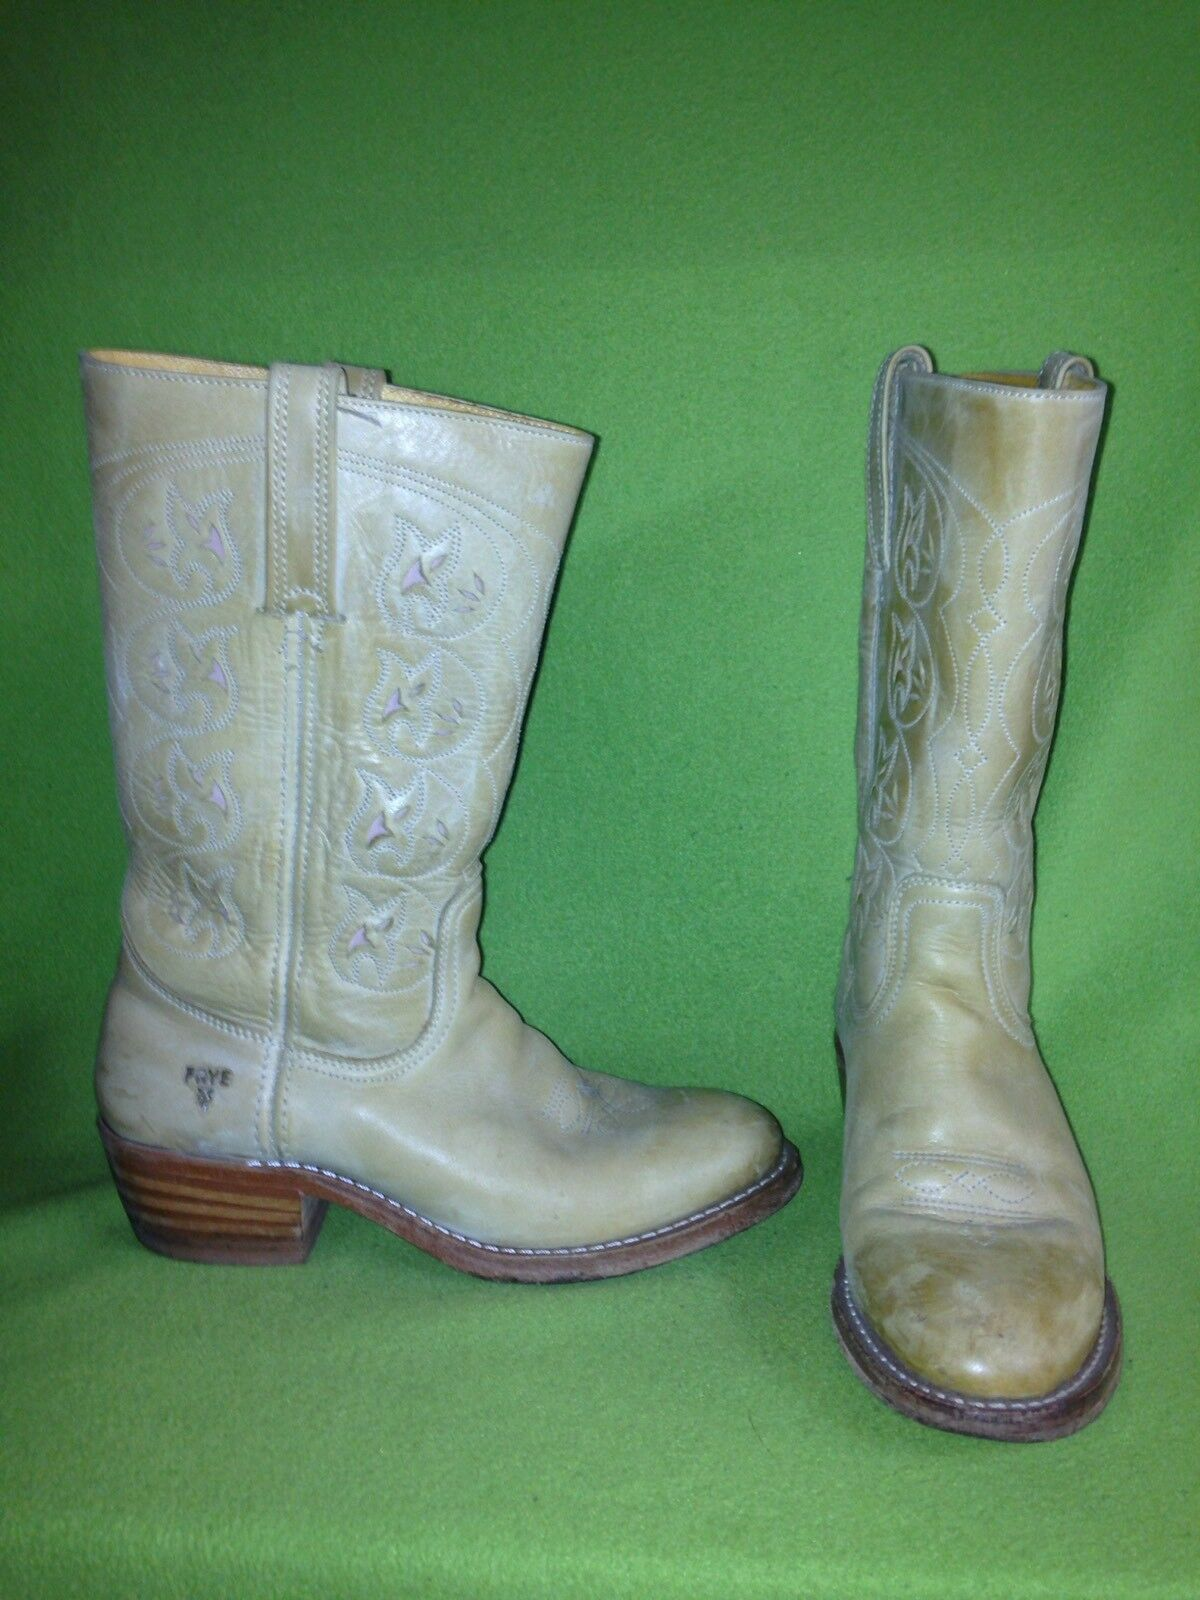 Tan Frye Boots with Cutout detail 9.5 M